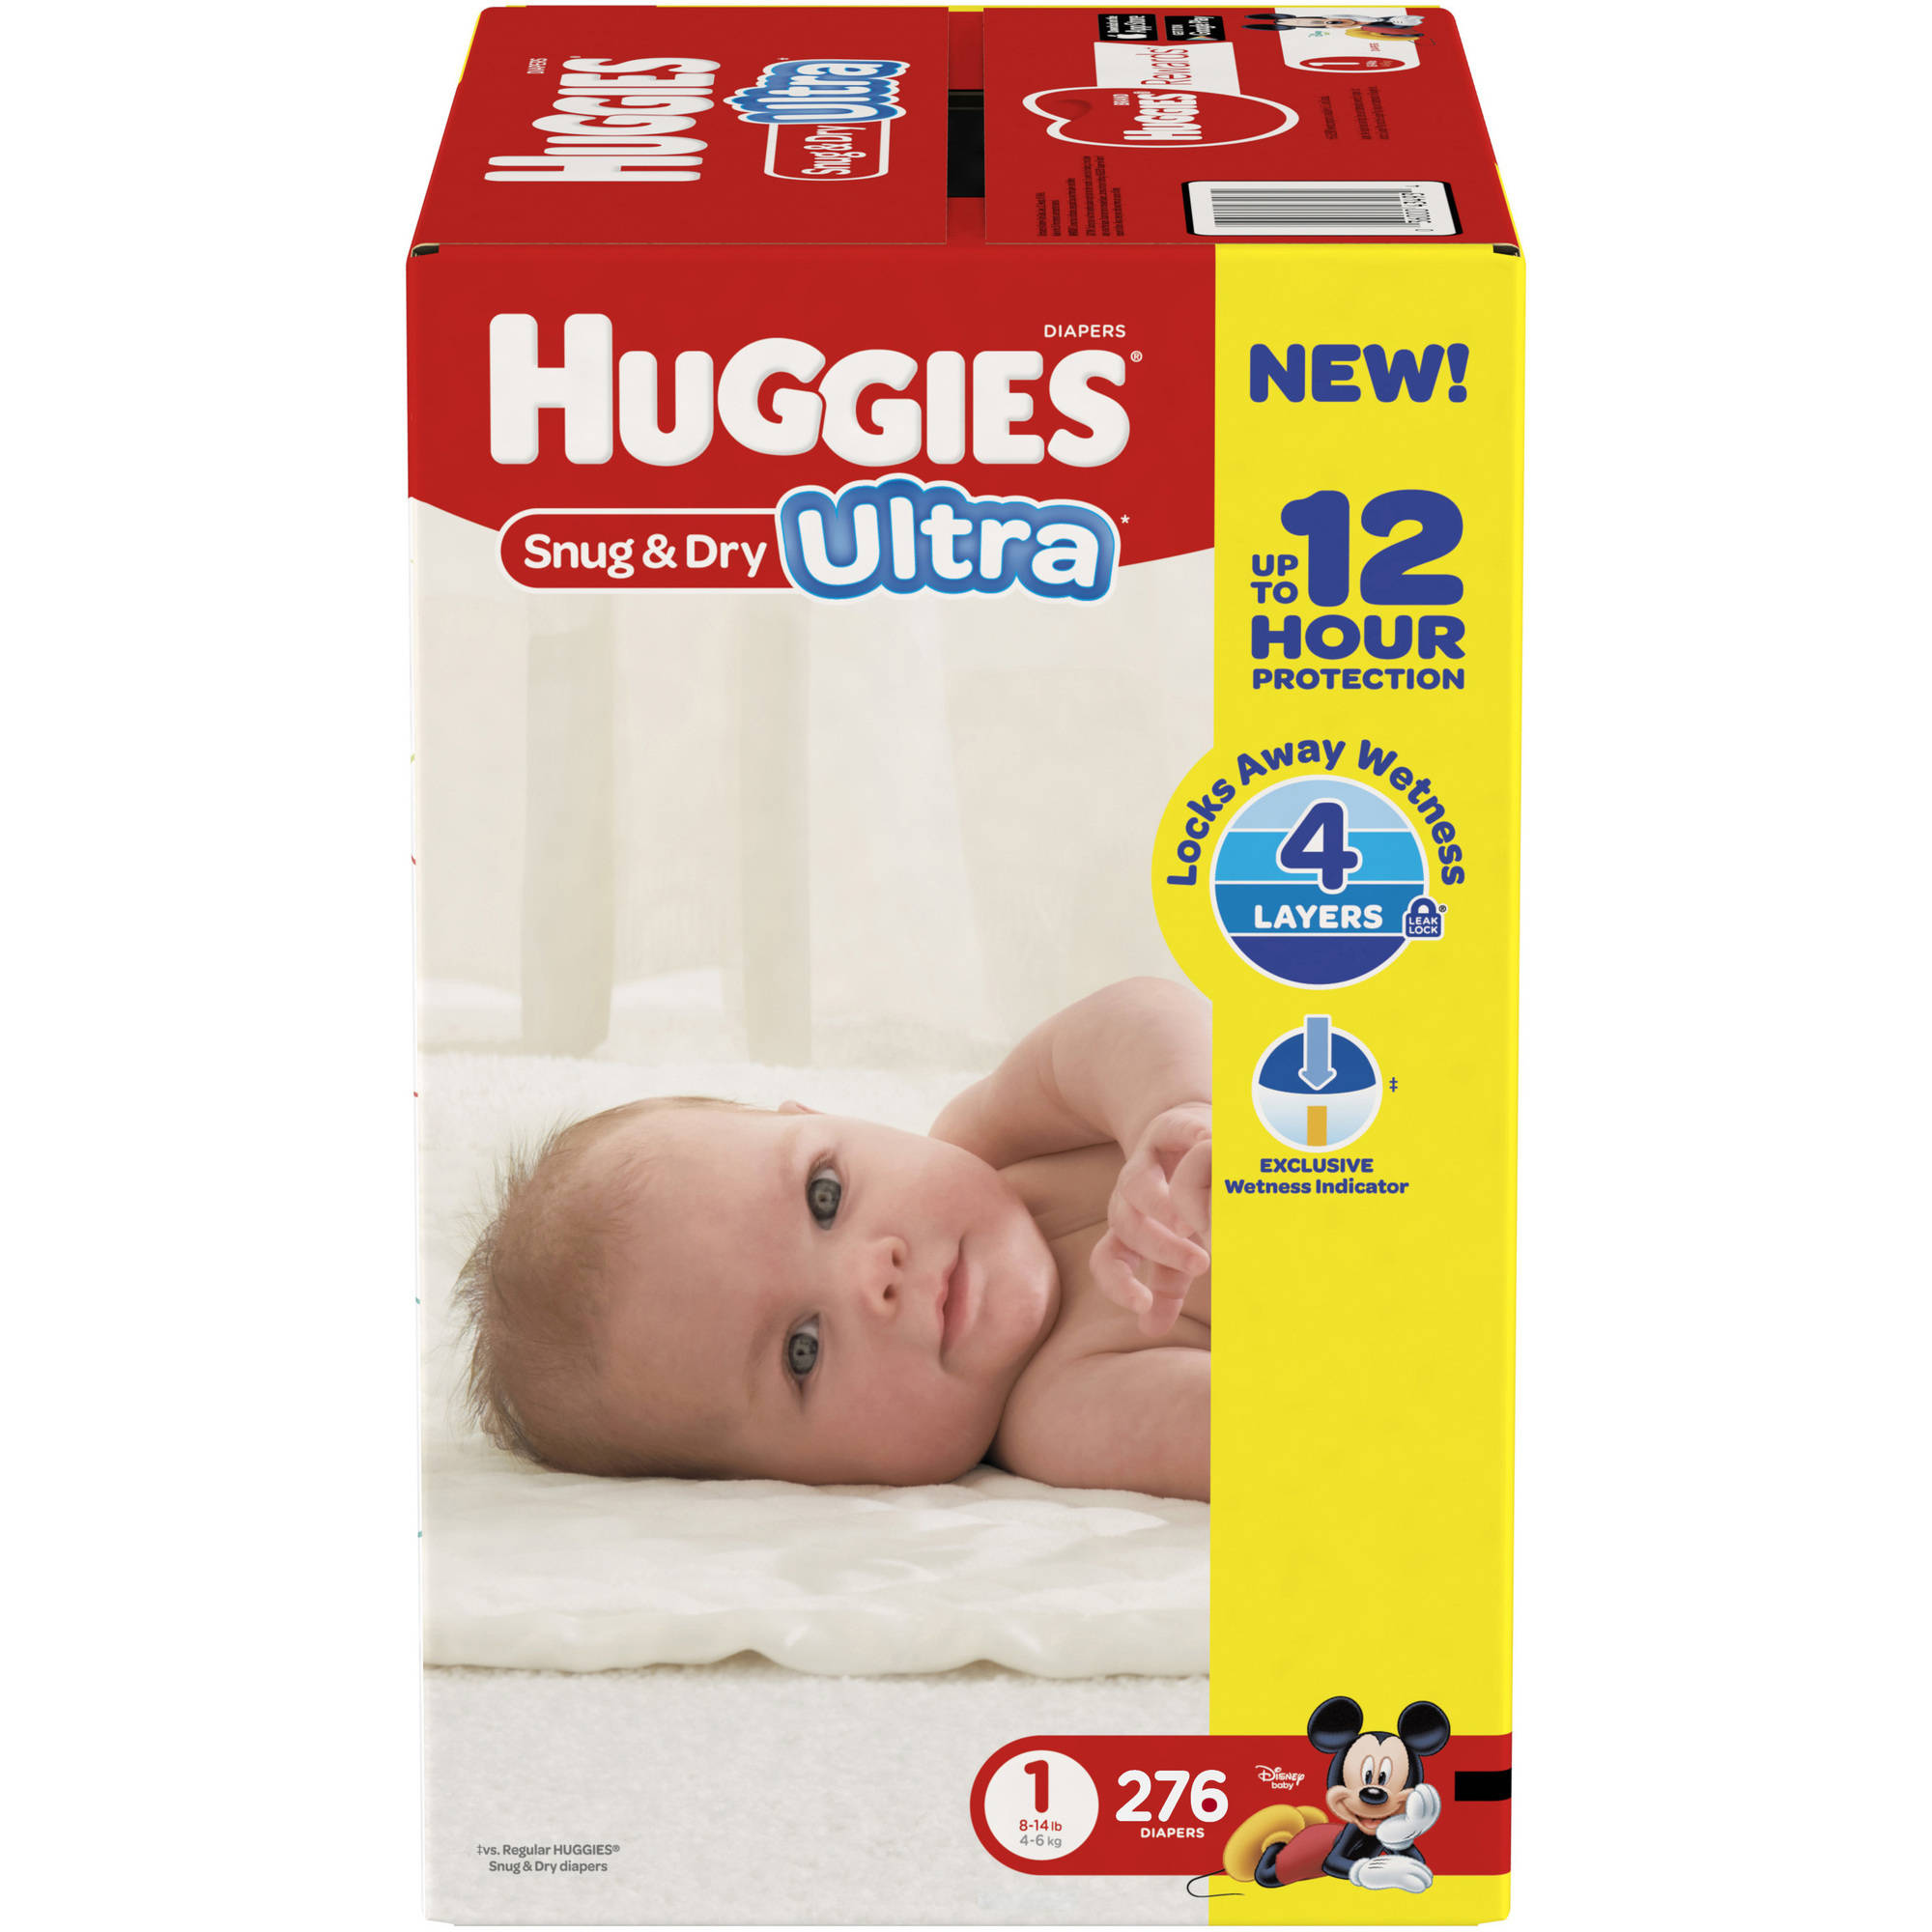 HUGGIES Snug and Dry ULTRA Diapers, Size 1 (Choose Diaper Count)